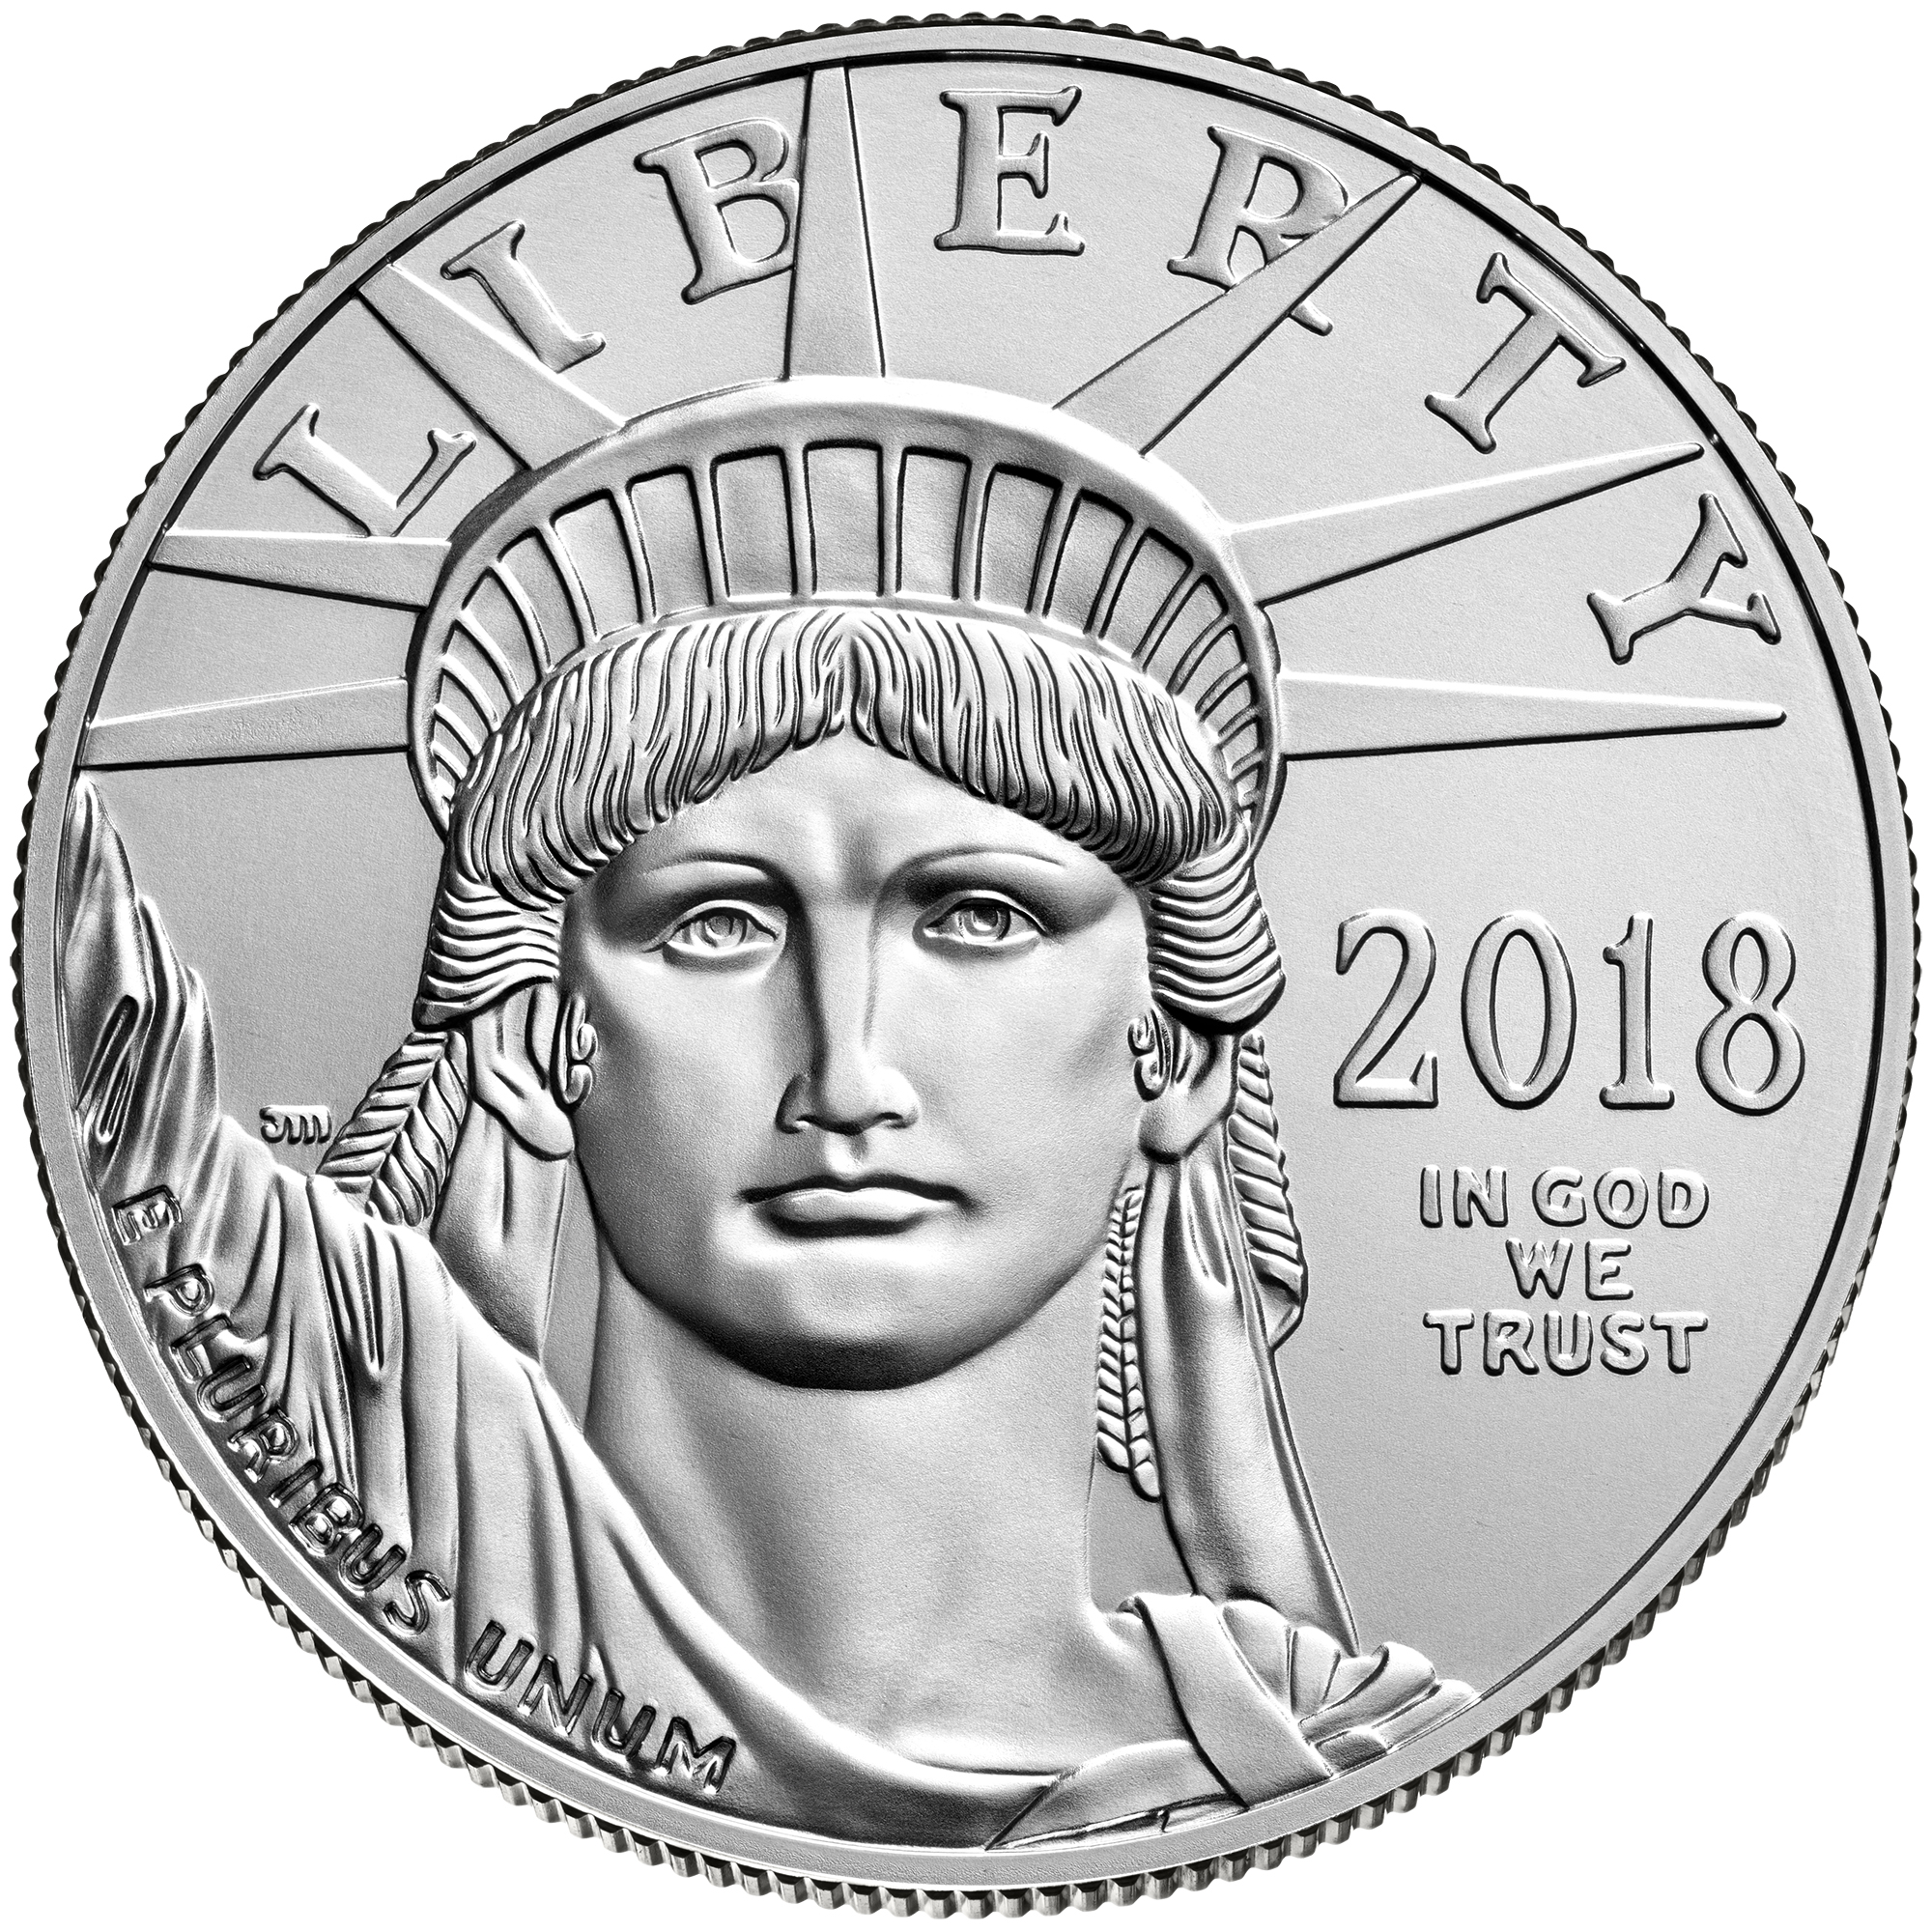 releases one u press s ounce news mint on july platinum american eagle anniversary states coin proof united obverse